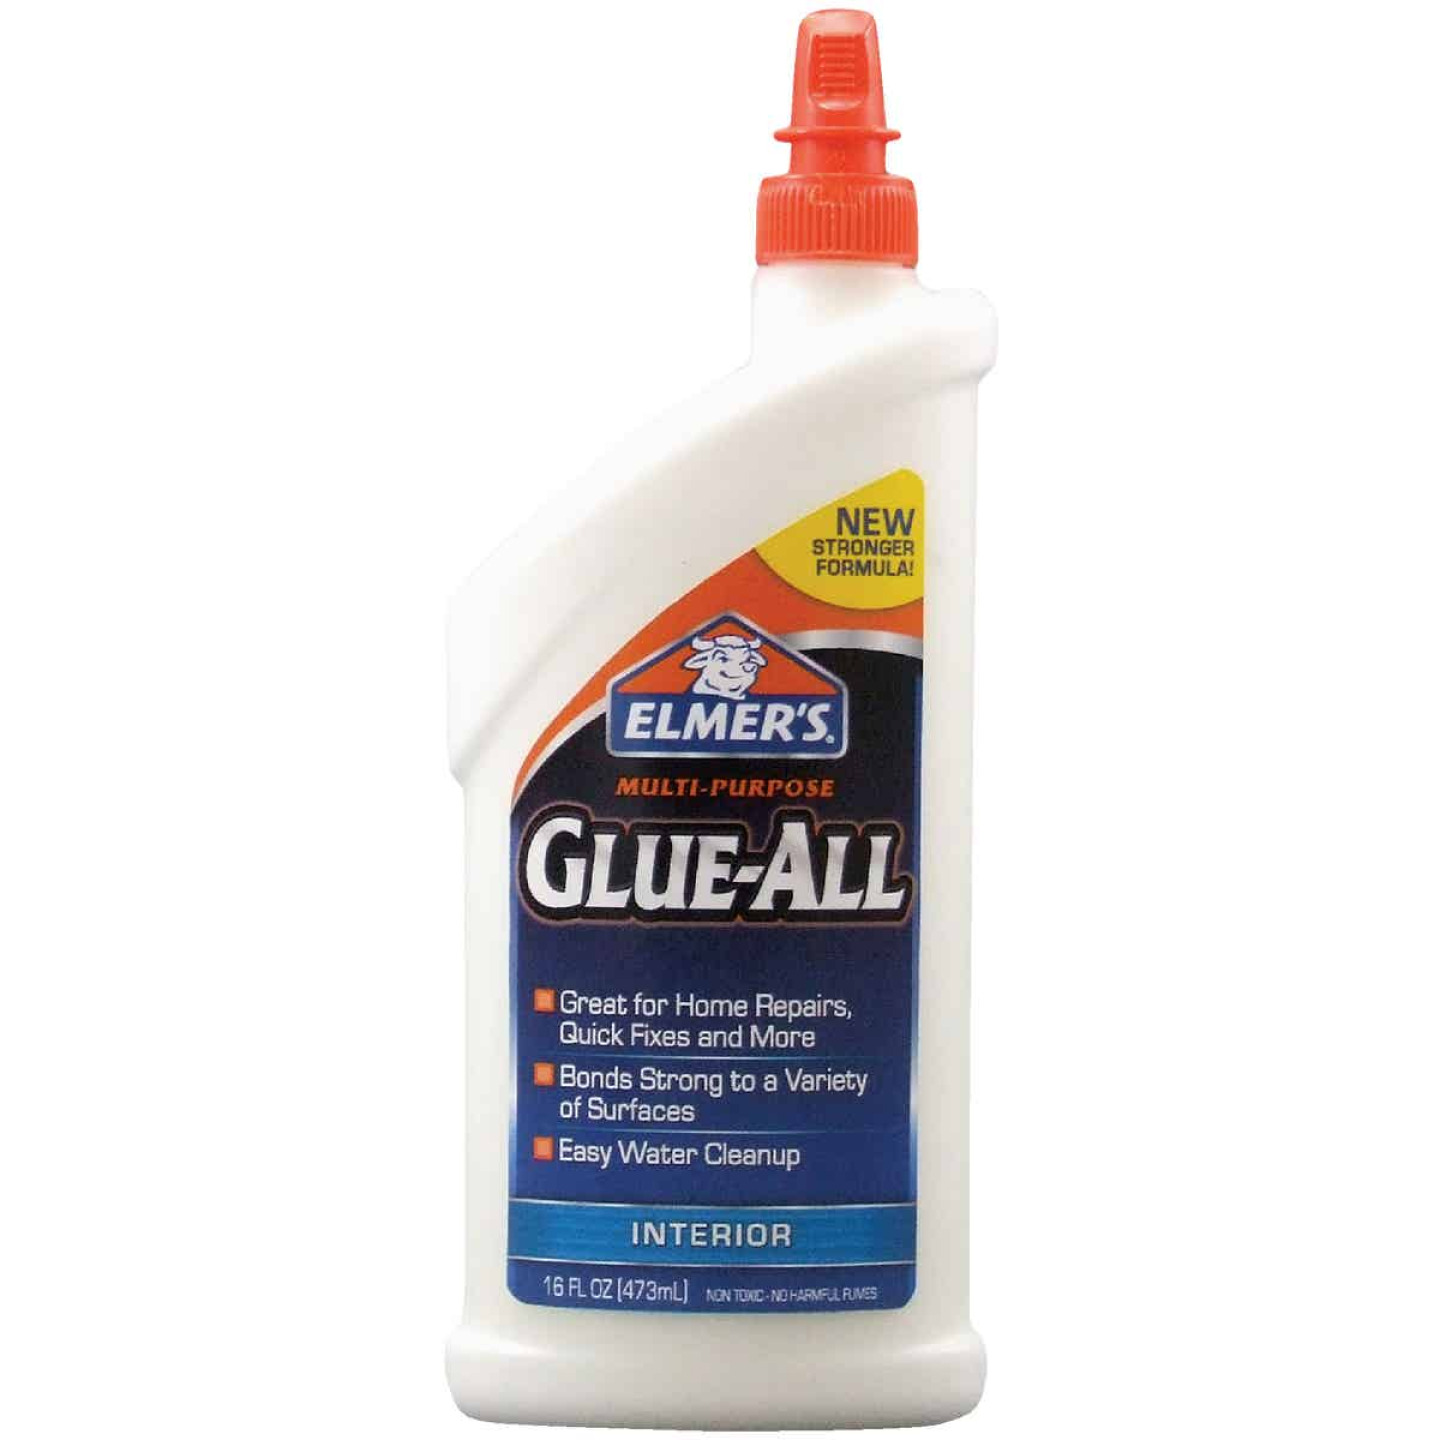 Elmer's Glue-All 16 Oz. All-Purpose Glue Image 1